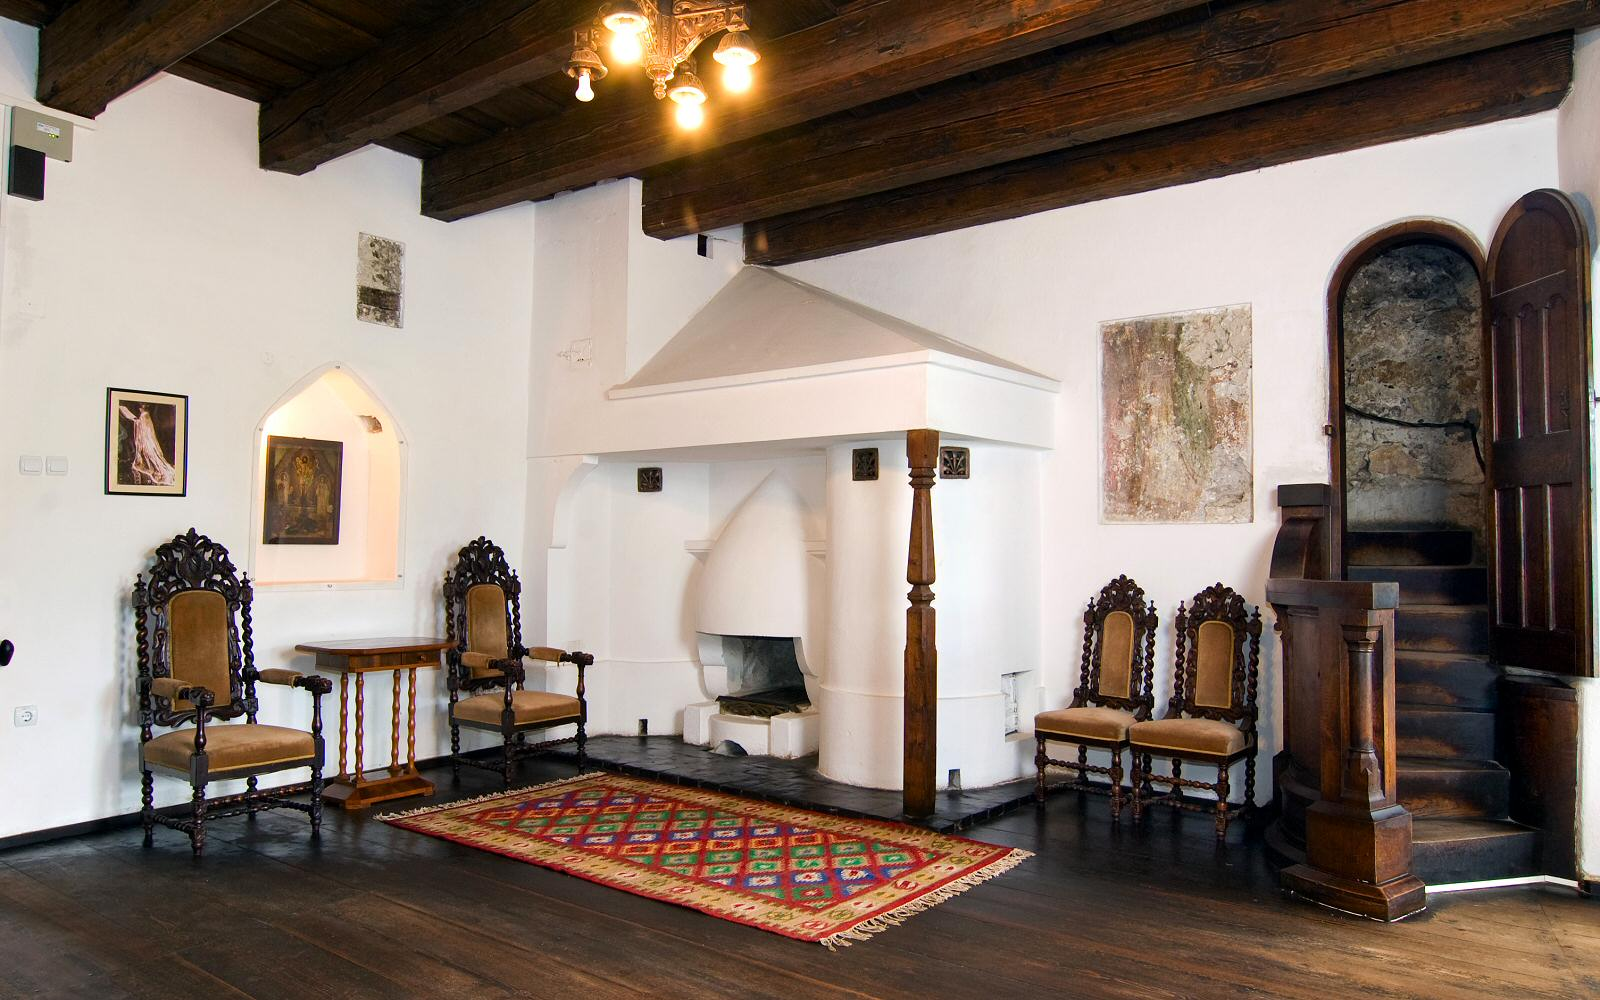 The original furniture and artwork along with some of the accessories were preserved and are now showed in the museum